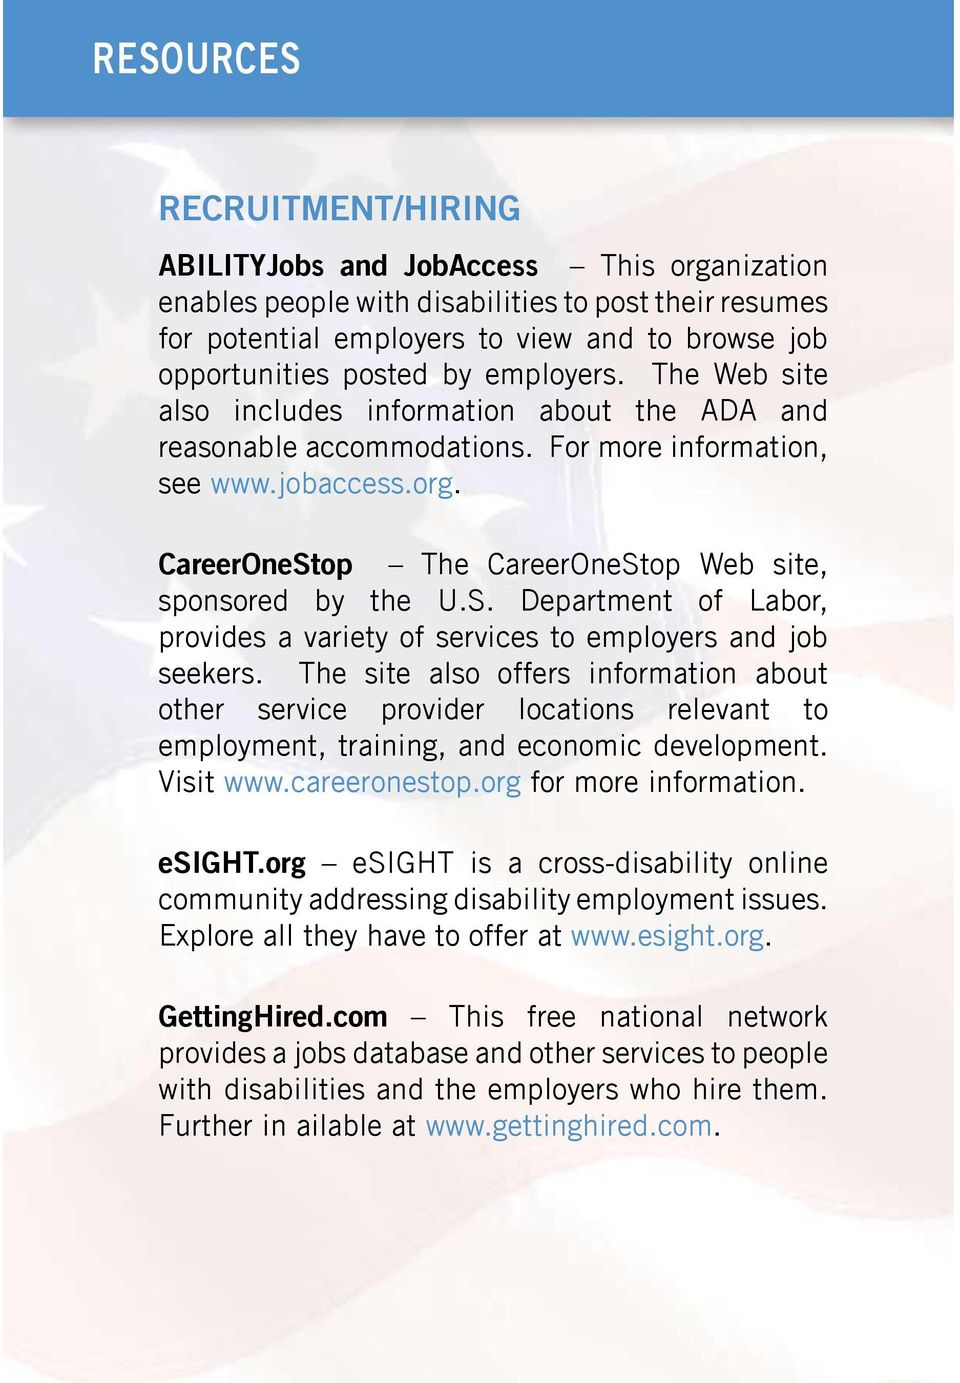 CareerOneStop The CareerOneStop Web site, sponsored by the U.S. Department of Labor, provides a variety of services to employers and job seekers.